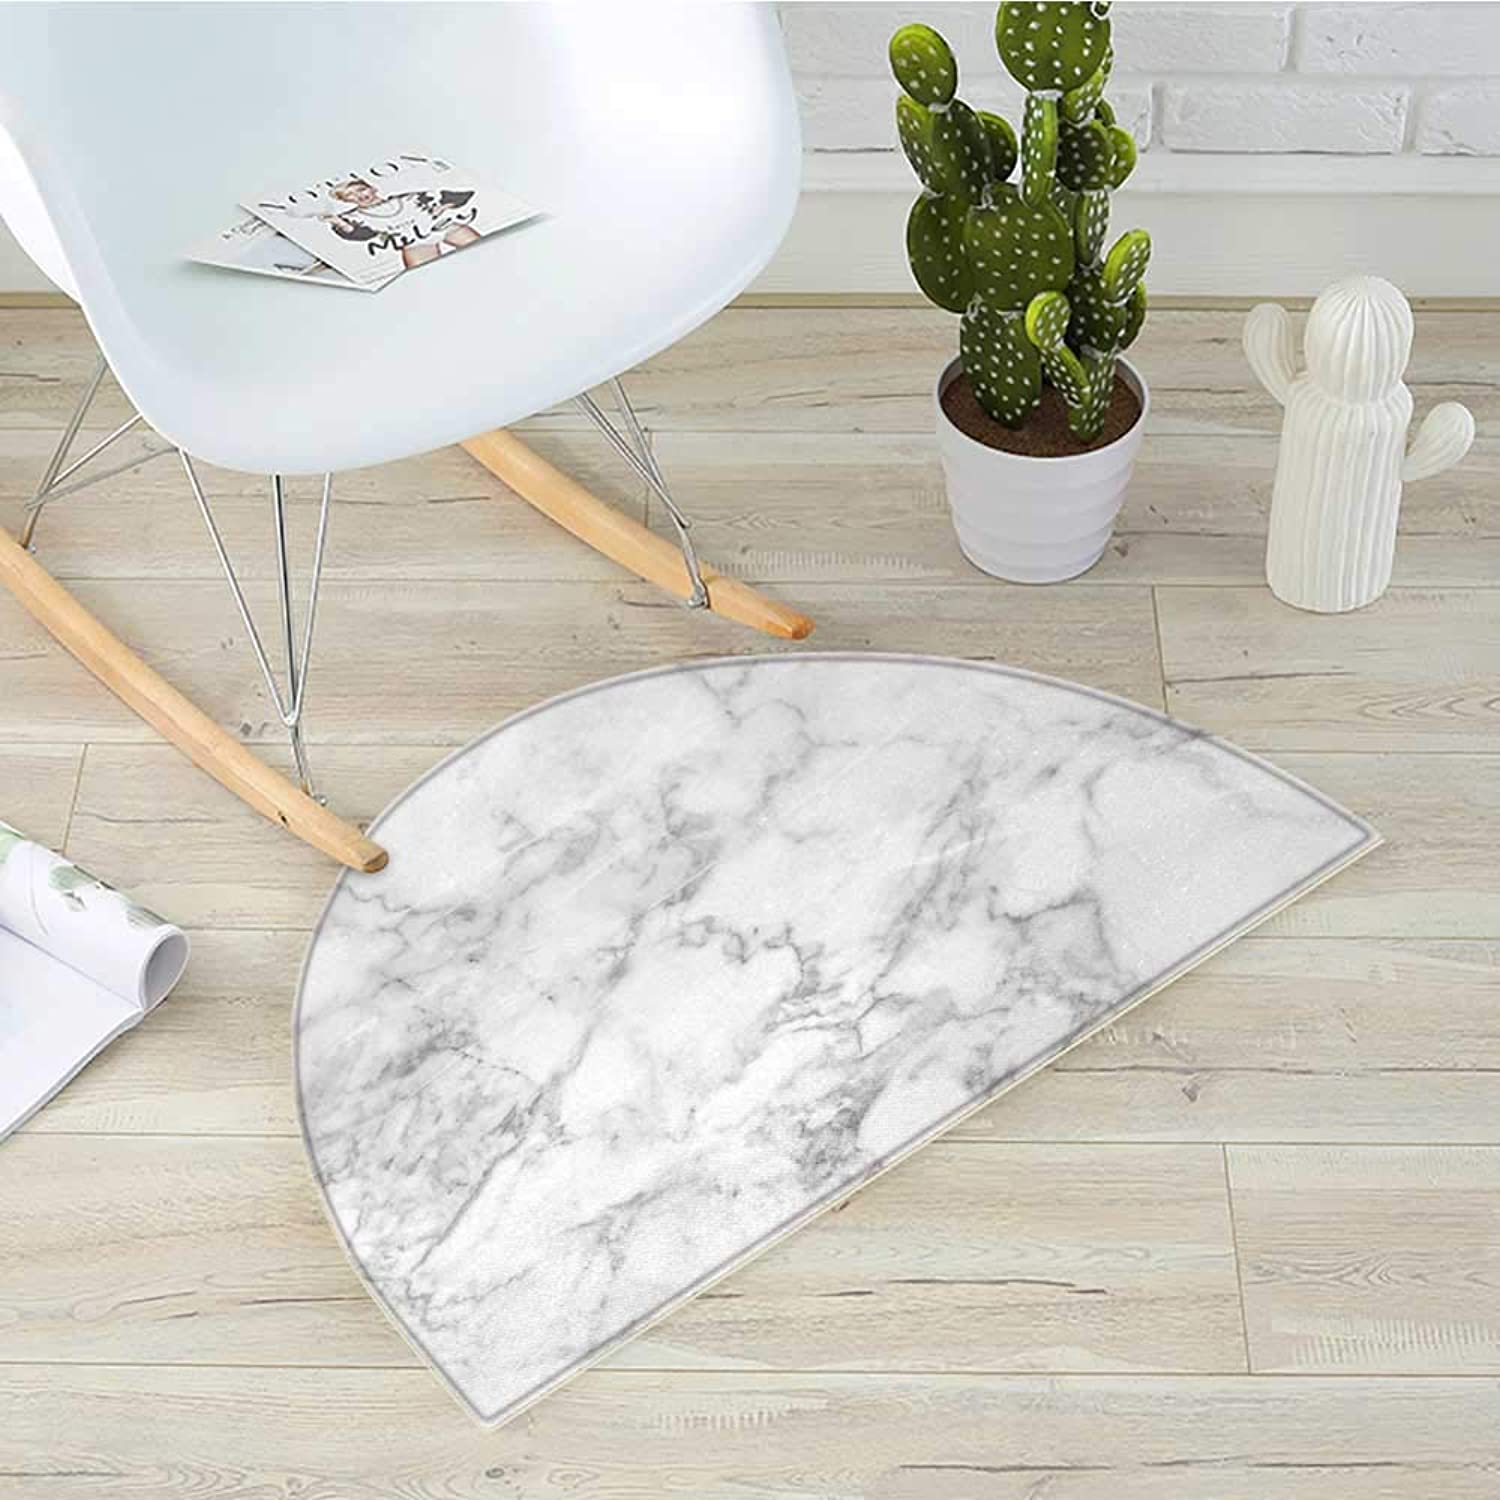 Marble Half Round Door mats Nature Granite Pattern with Cloudy Spotted Trace Effects Marble Artistic Image Bathroom Mat H 43.3  xD 64.9  Pale Grey Dust